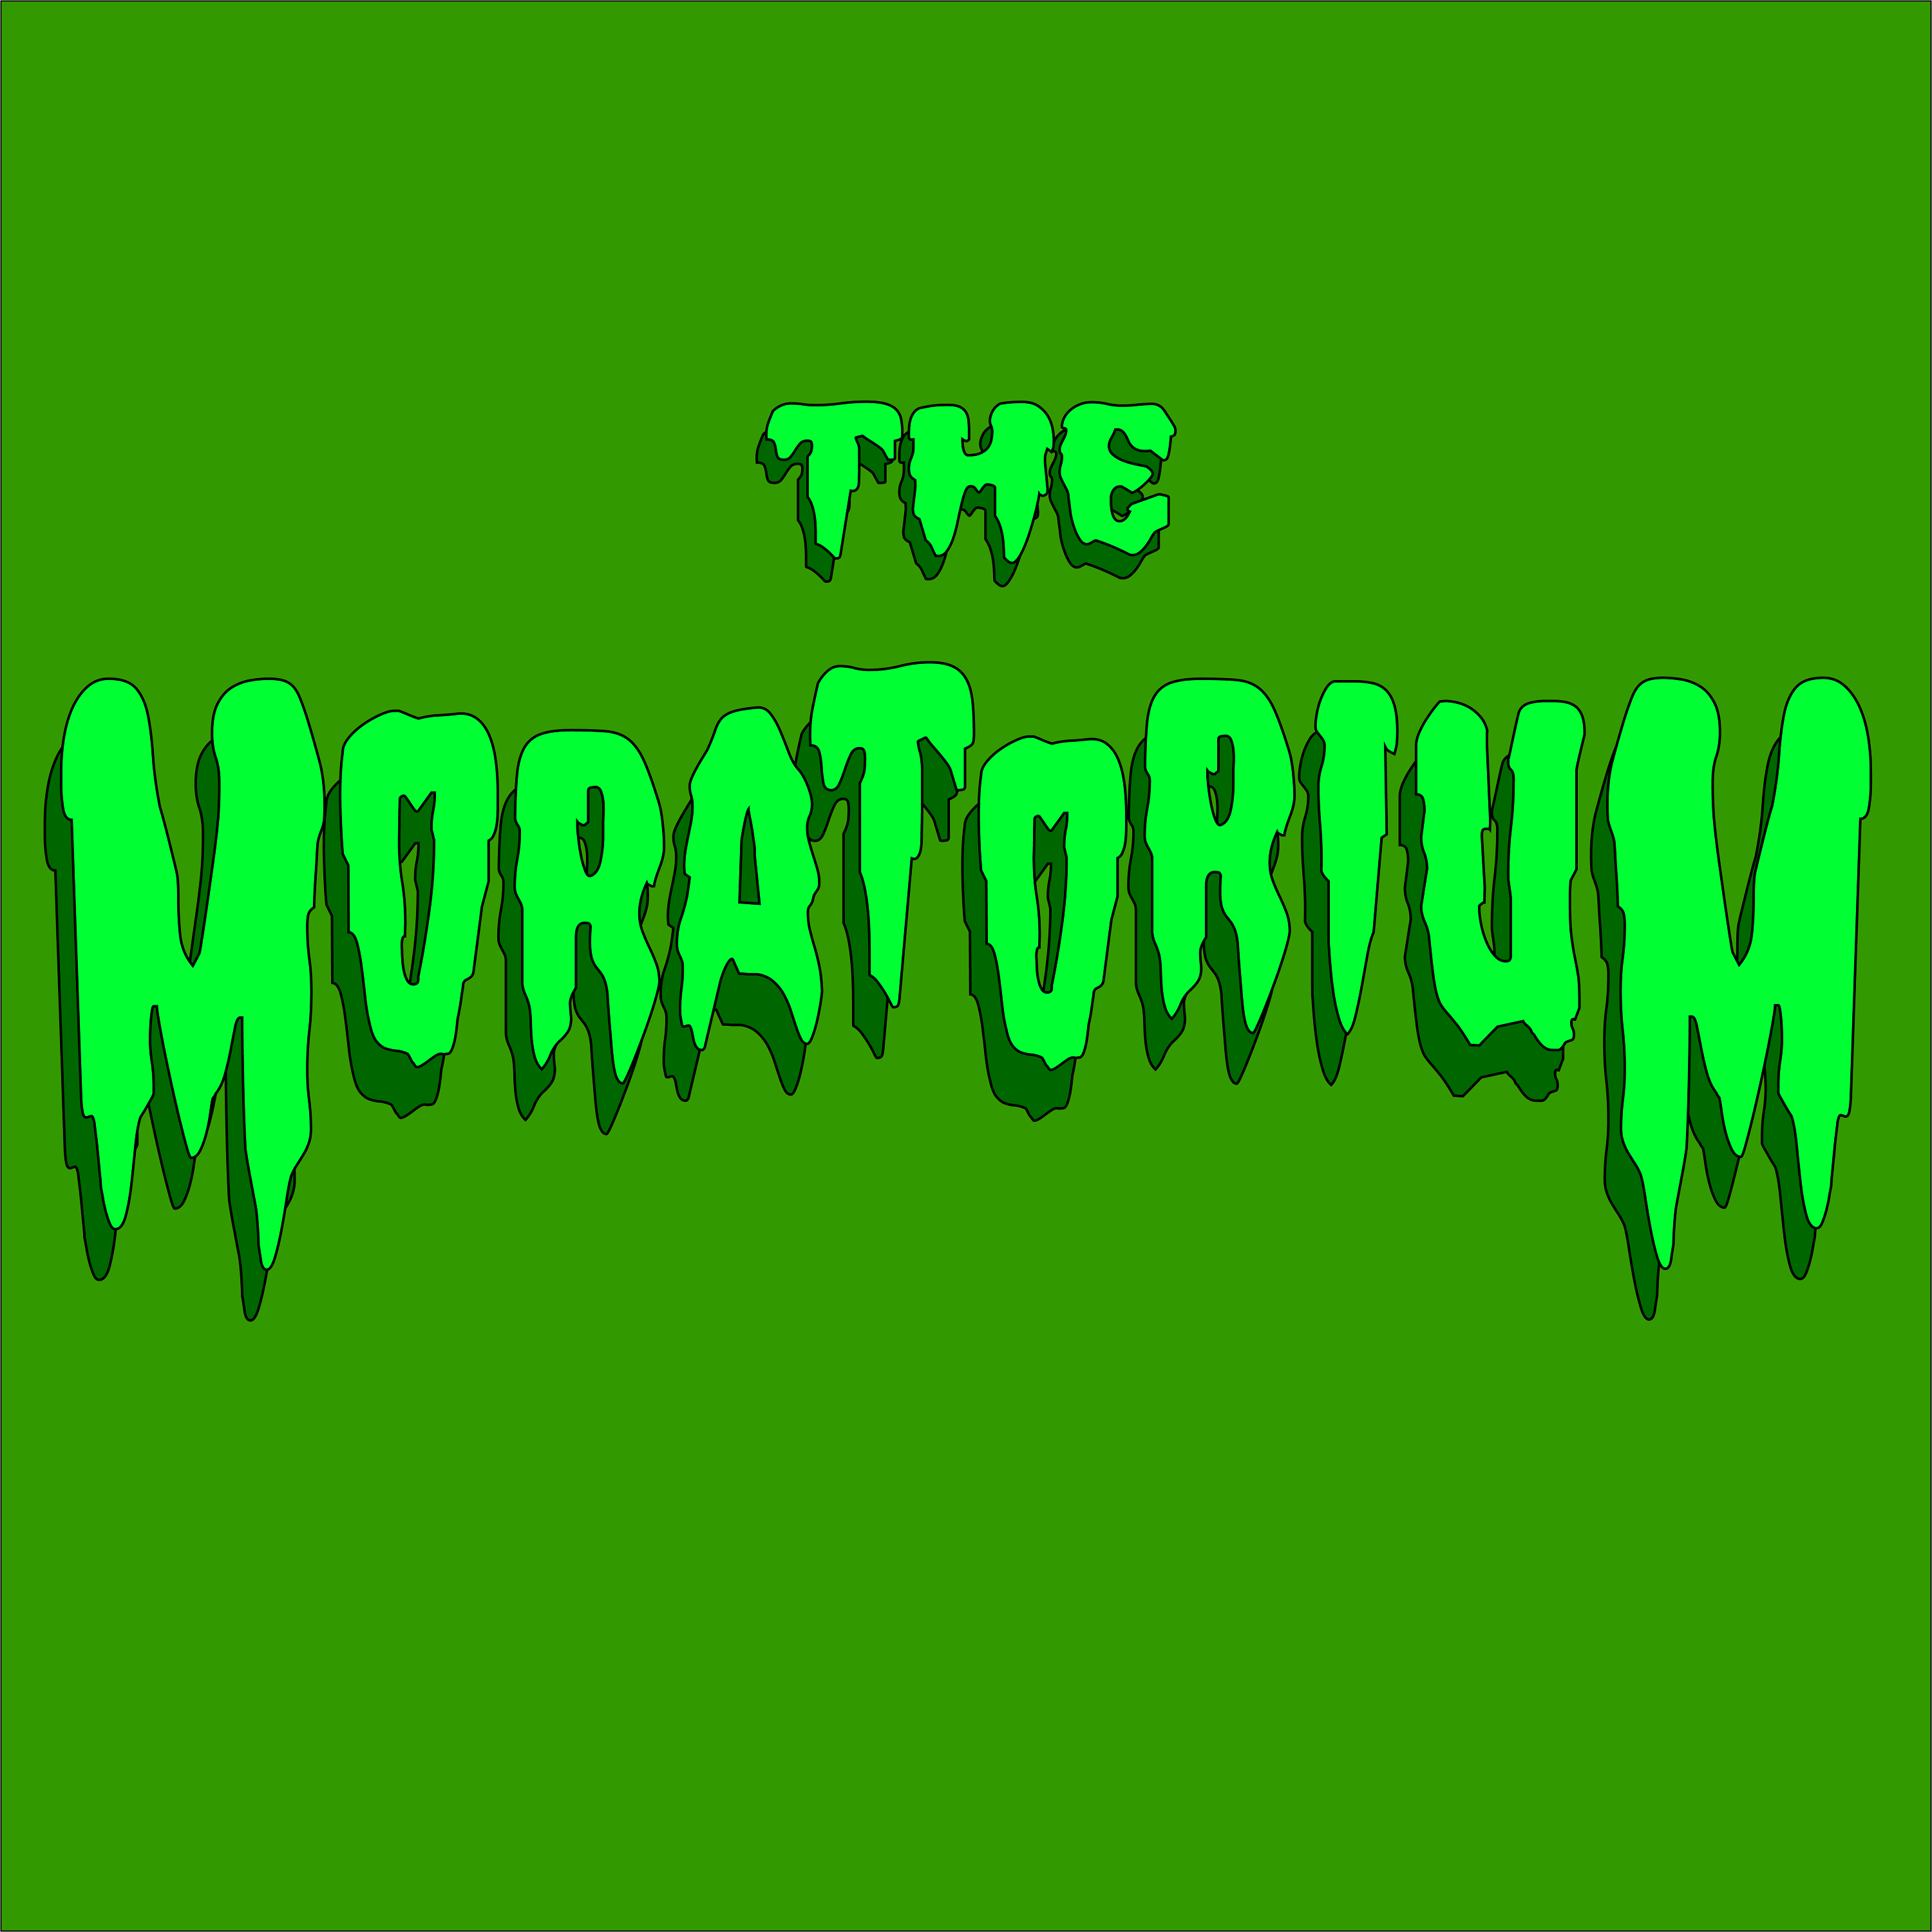 A highlight from Episode 232 The Moratorium Presents The Zodiac pt. 1